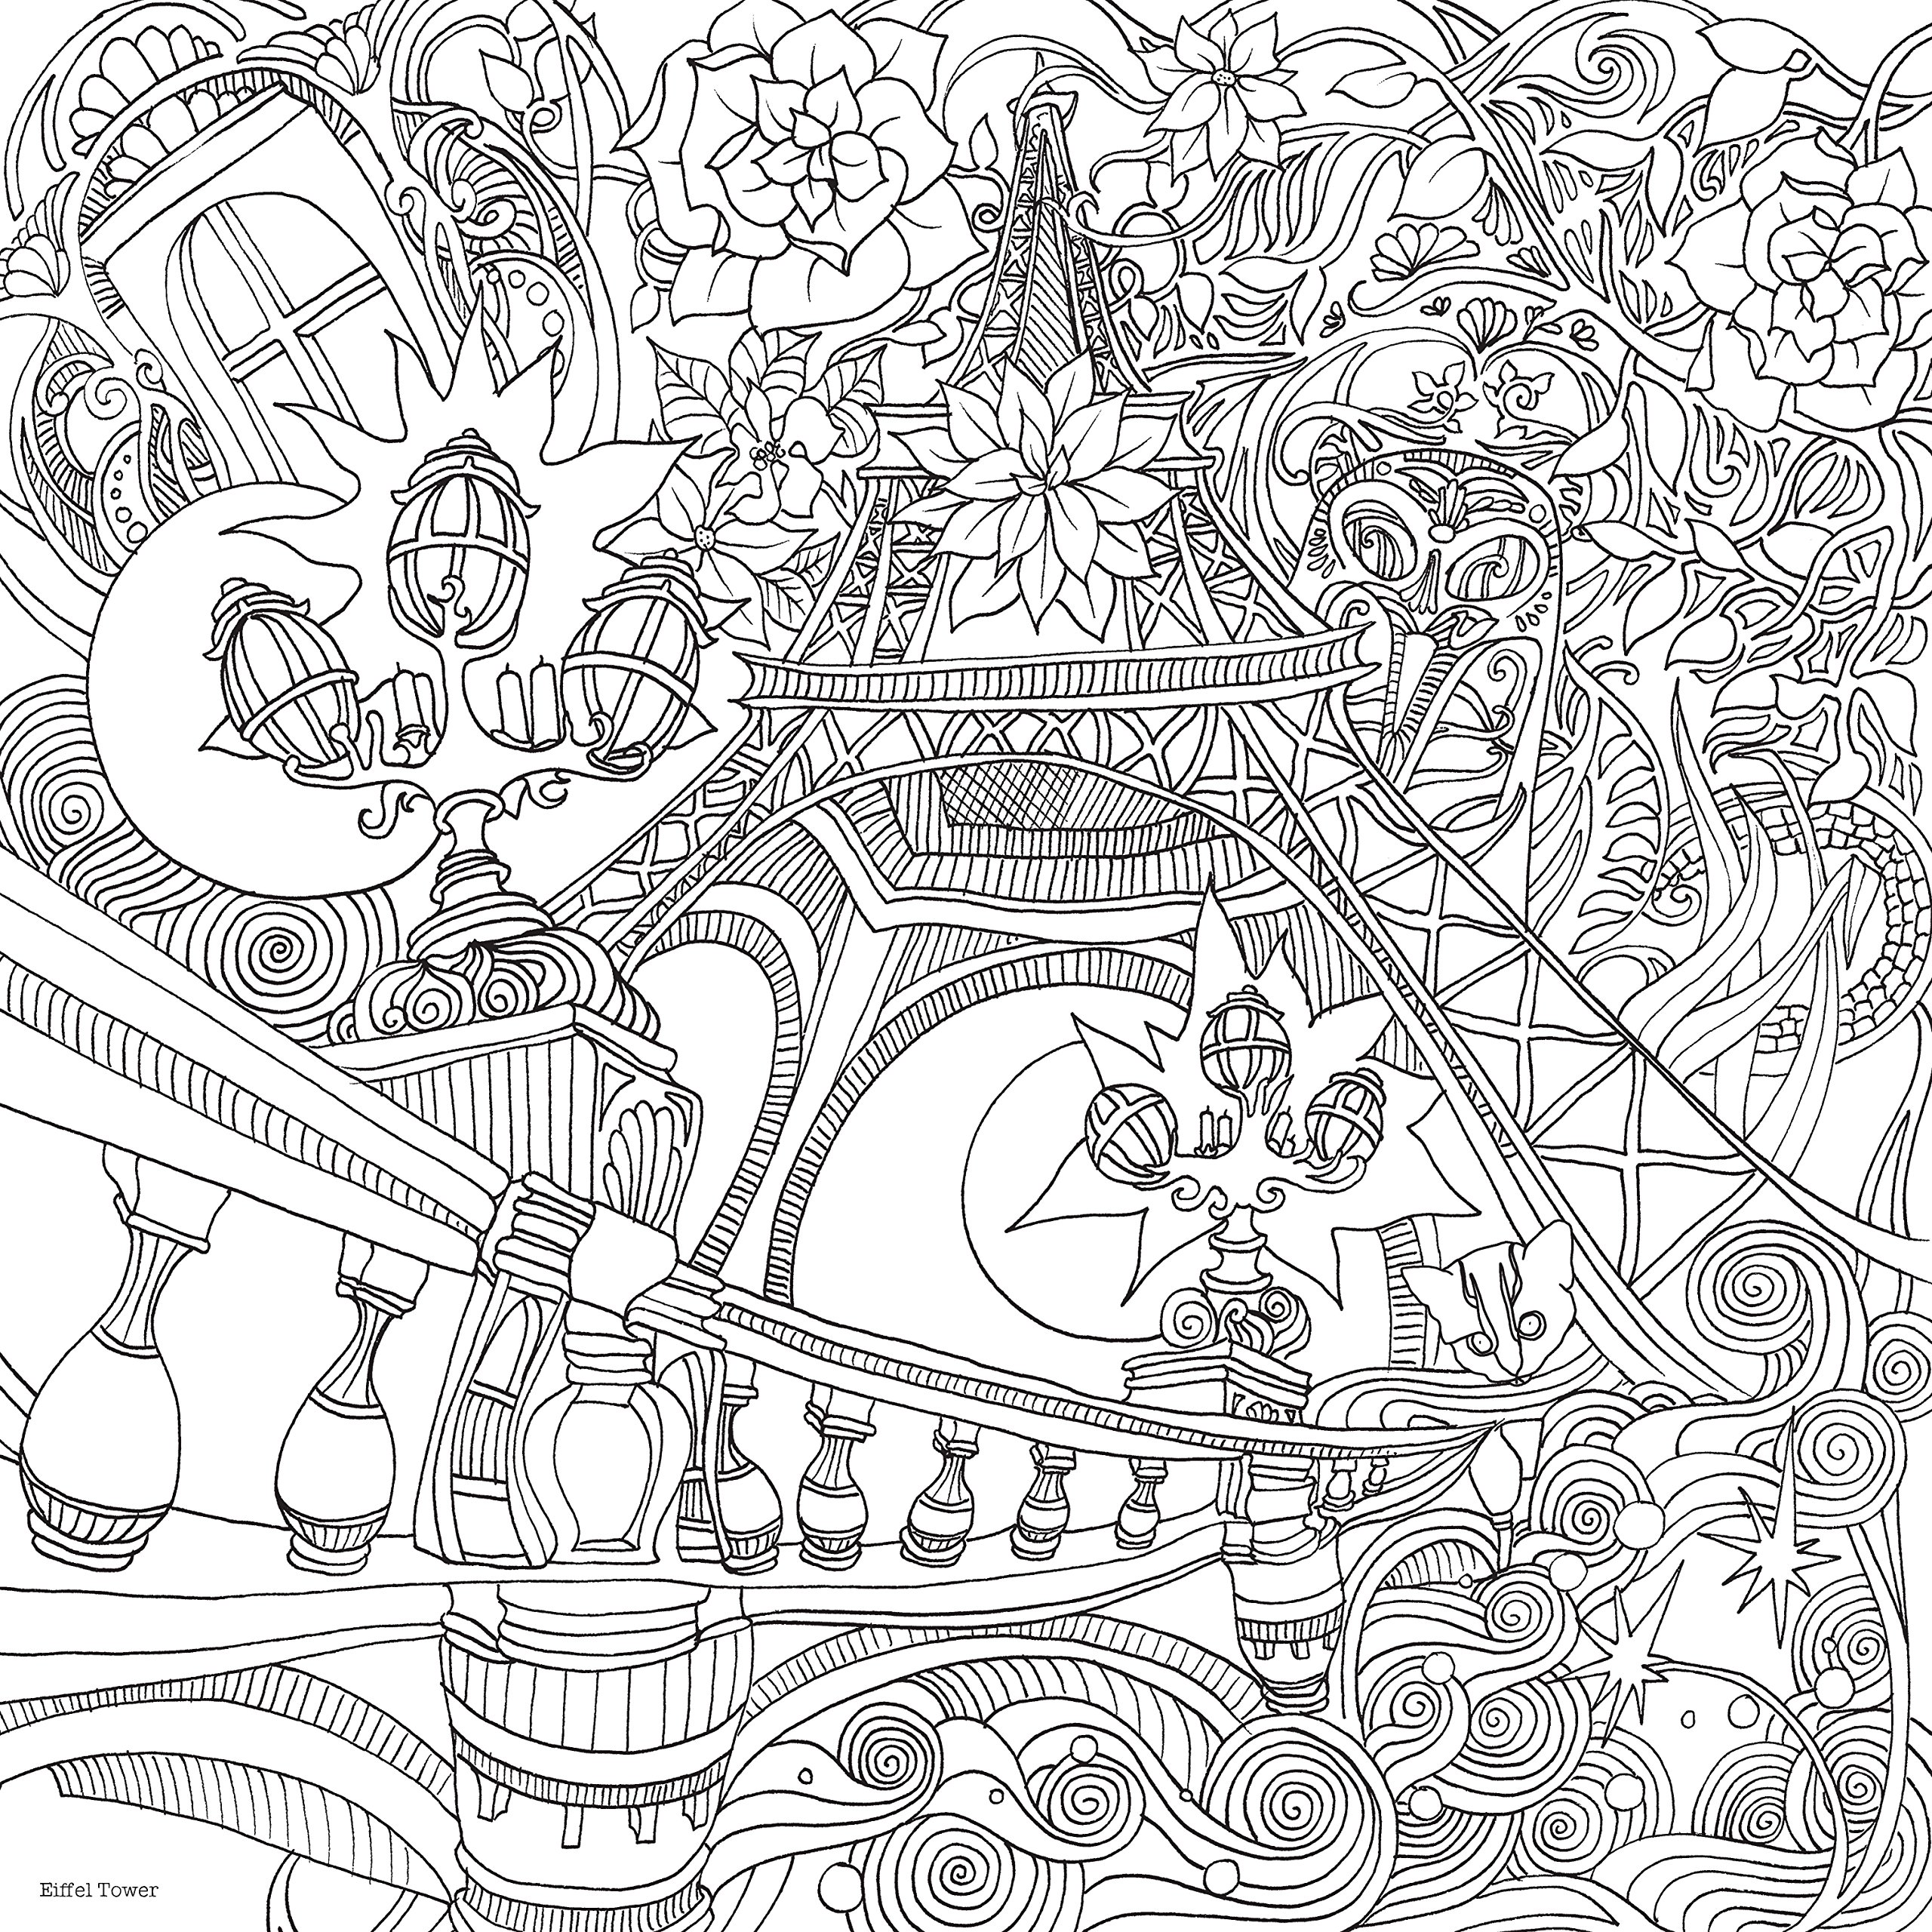 A fun magic coloring book amazon - The Magical City A Colouring Book Magical Colouring Books Lizzie Mary Cullen 0783324954333 Amazon Com Books